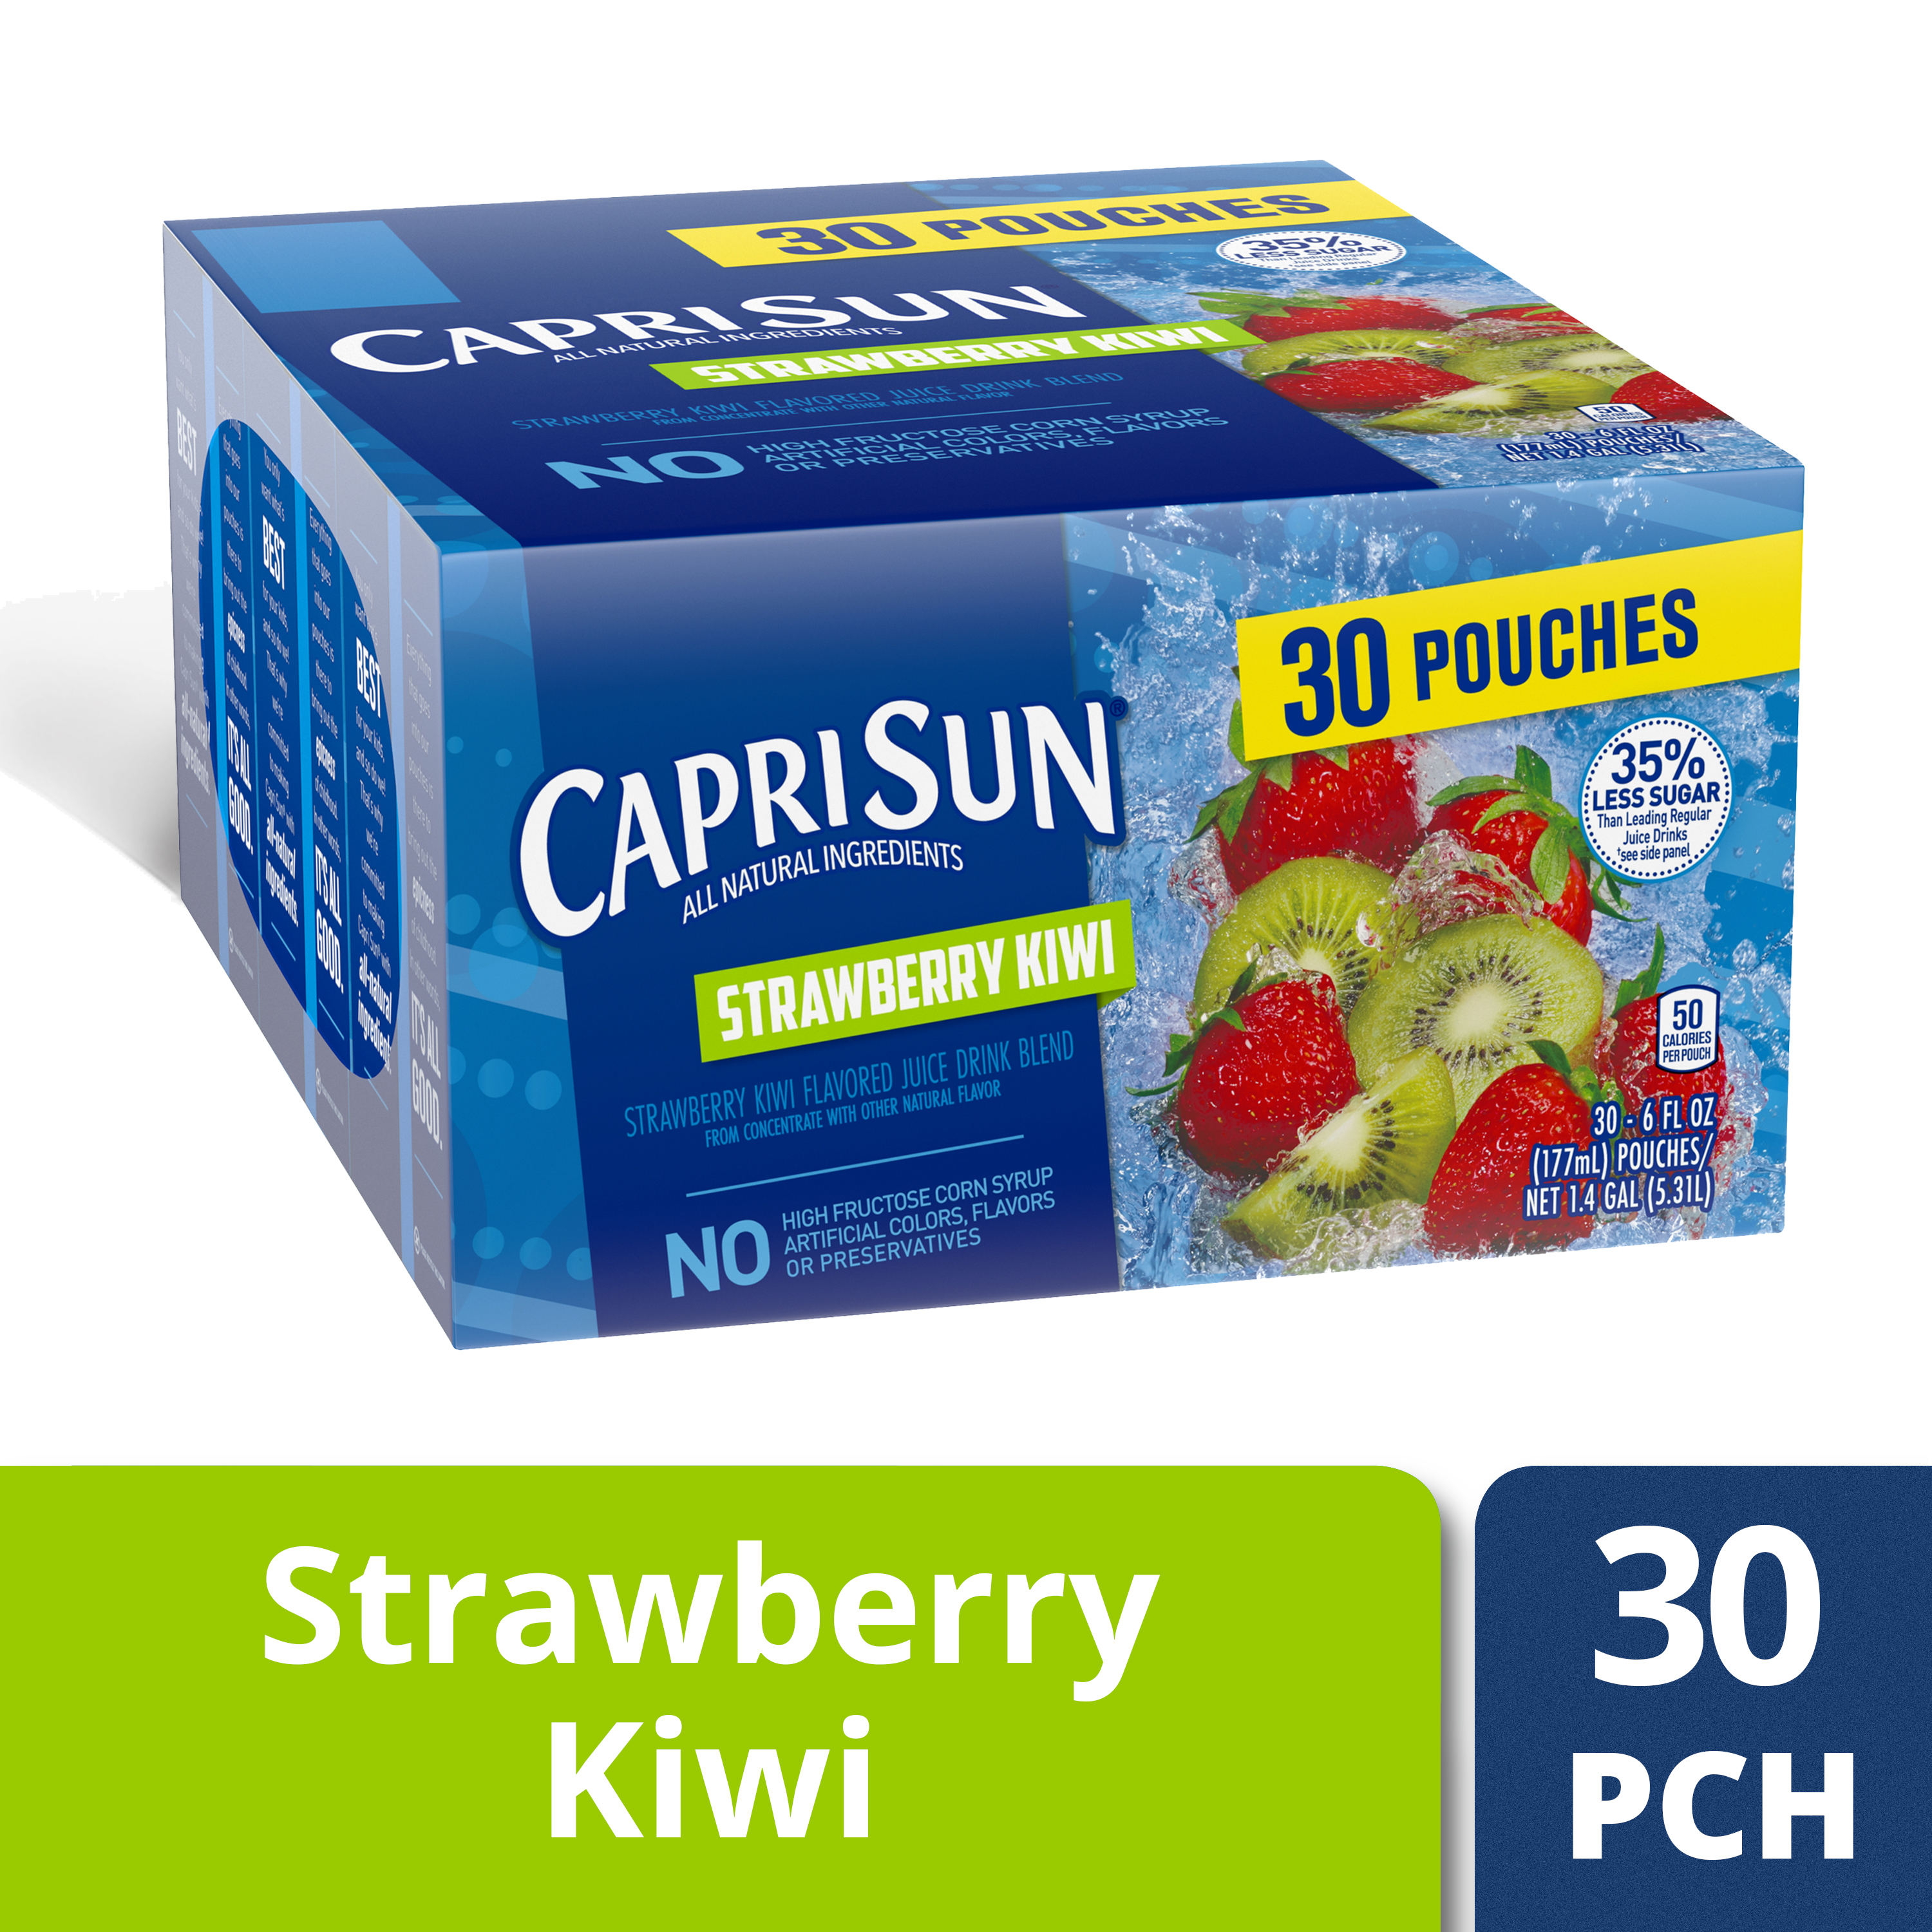 Capri Sun Strawberry Kiwi Flavored Juice Drink Blend 30-6 fl oz Pouches